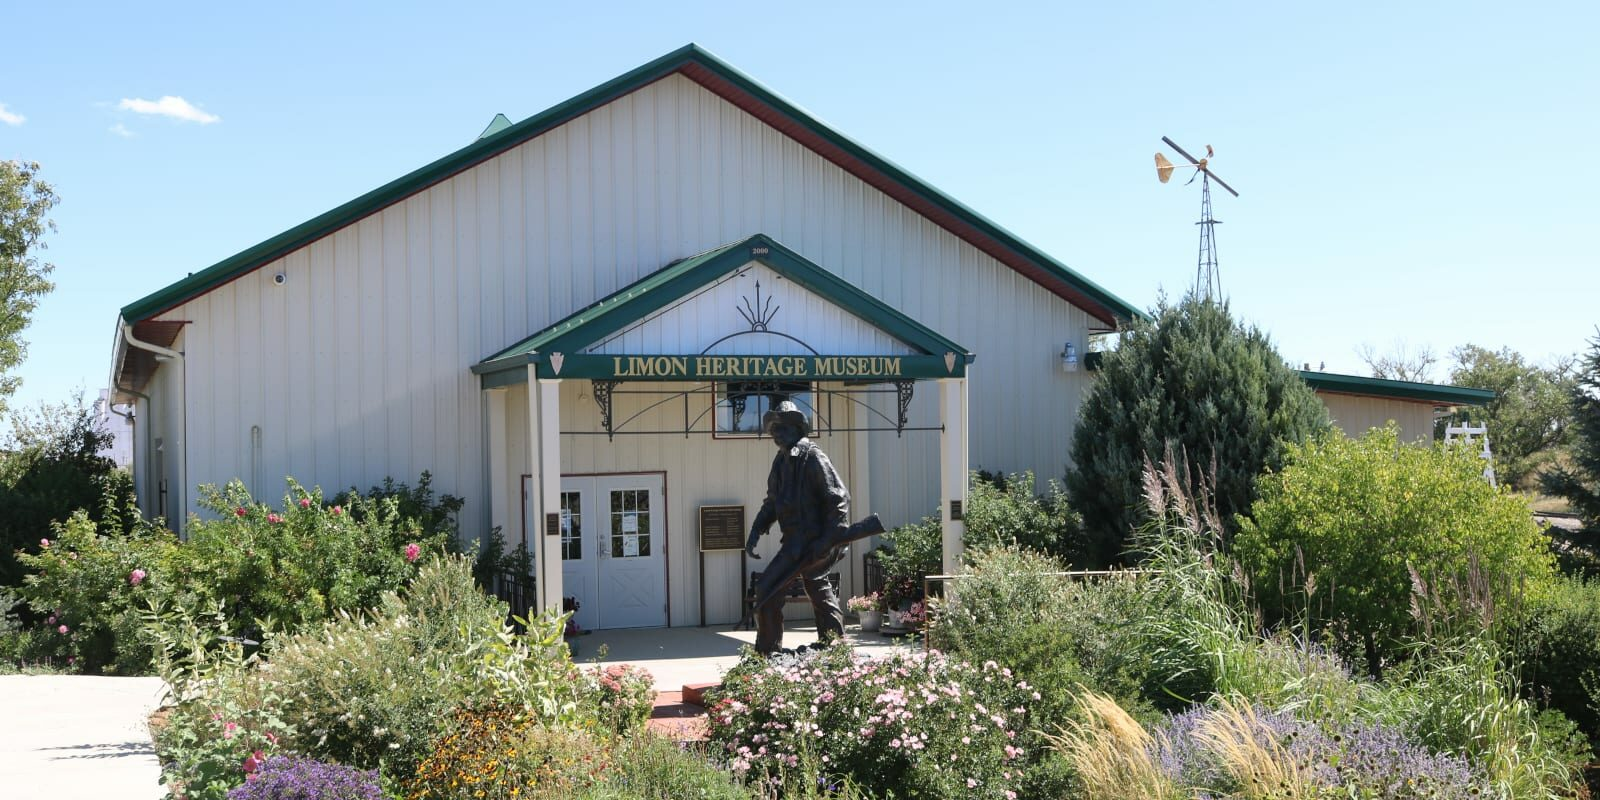 The Limon Heritage Museum in Limon, Colorado